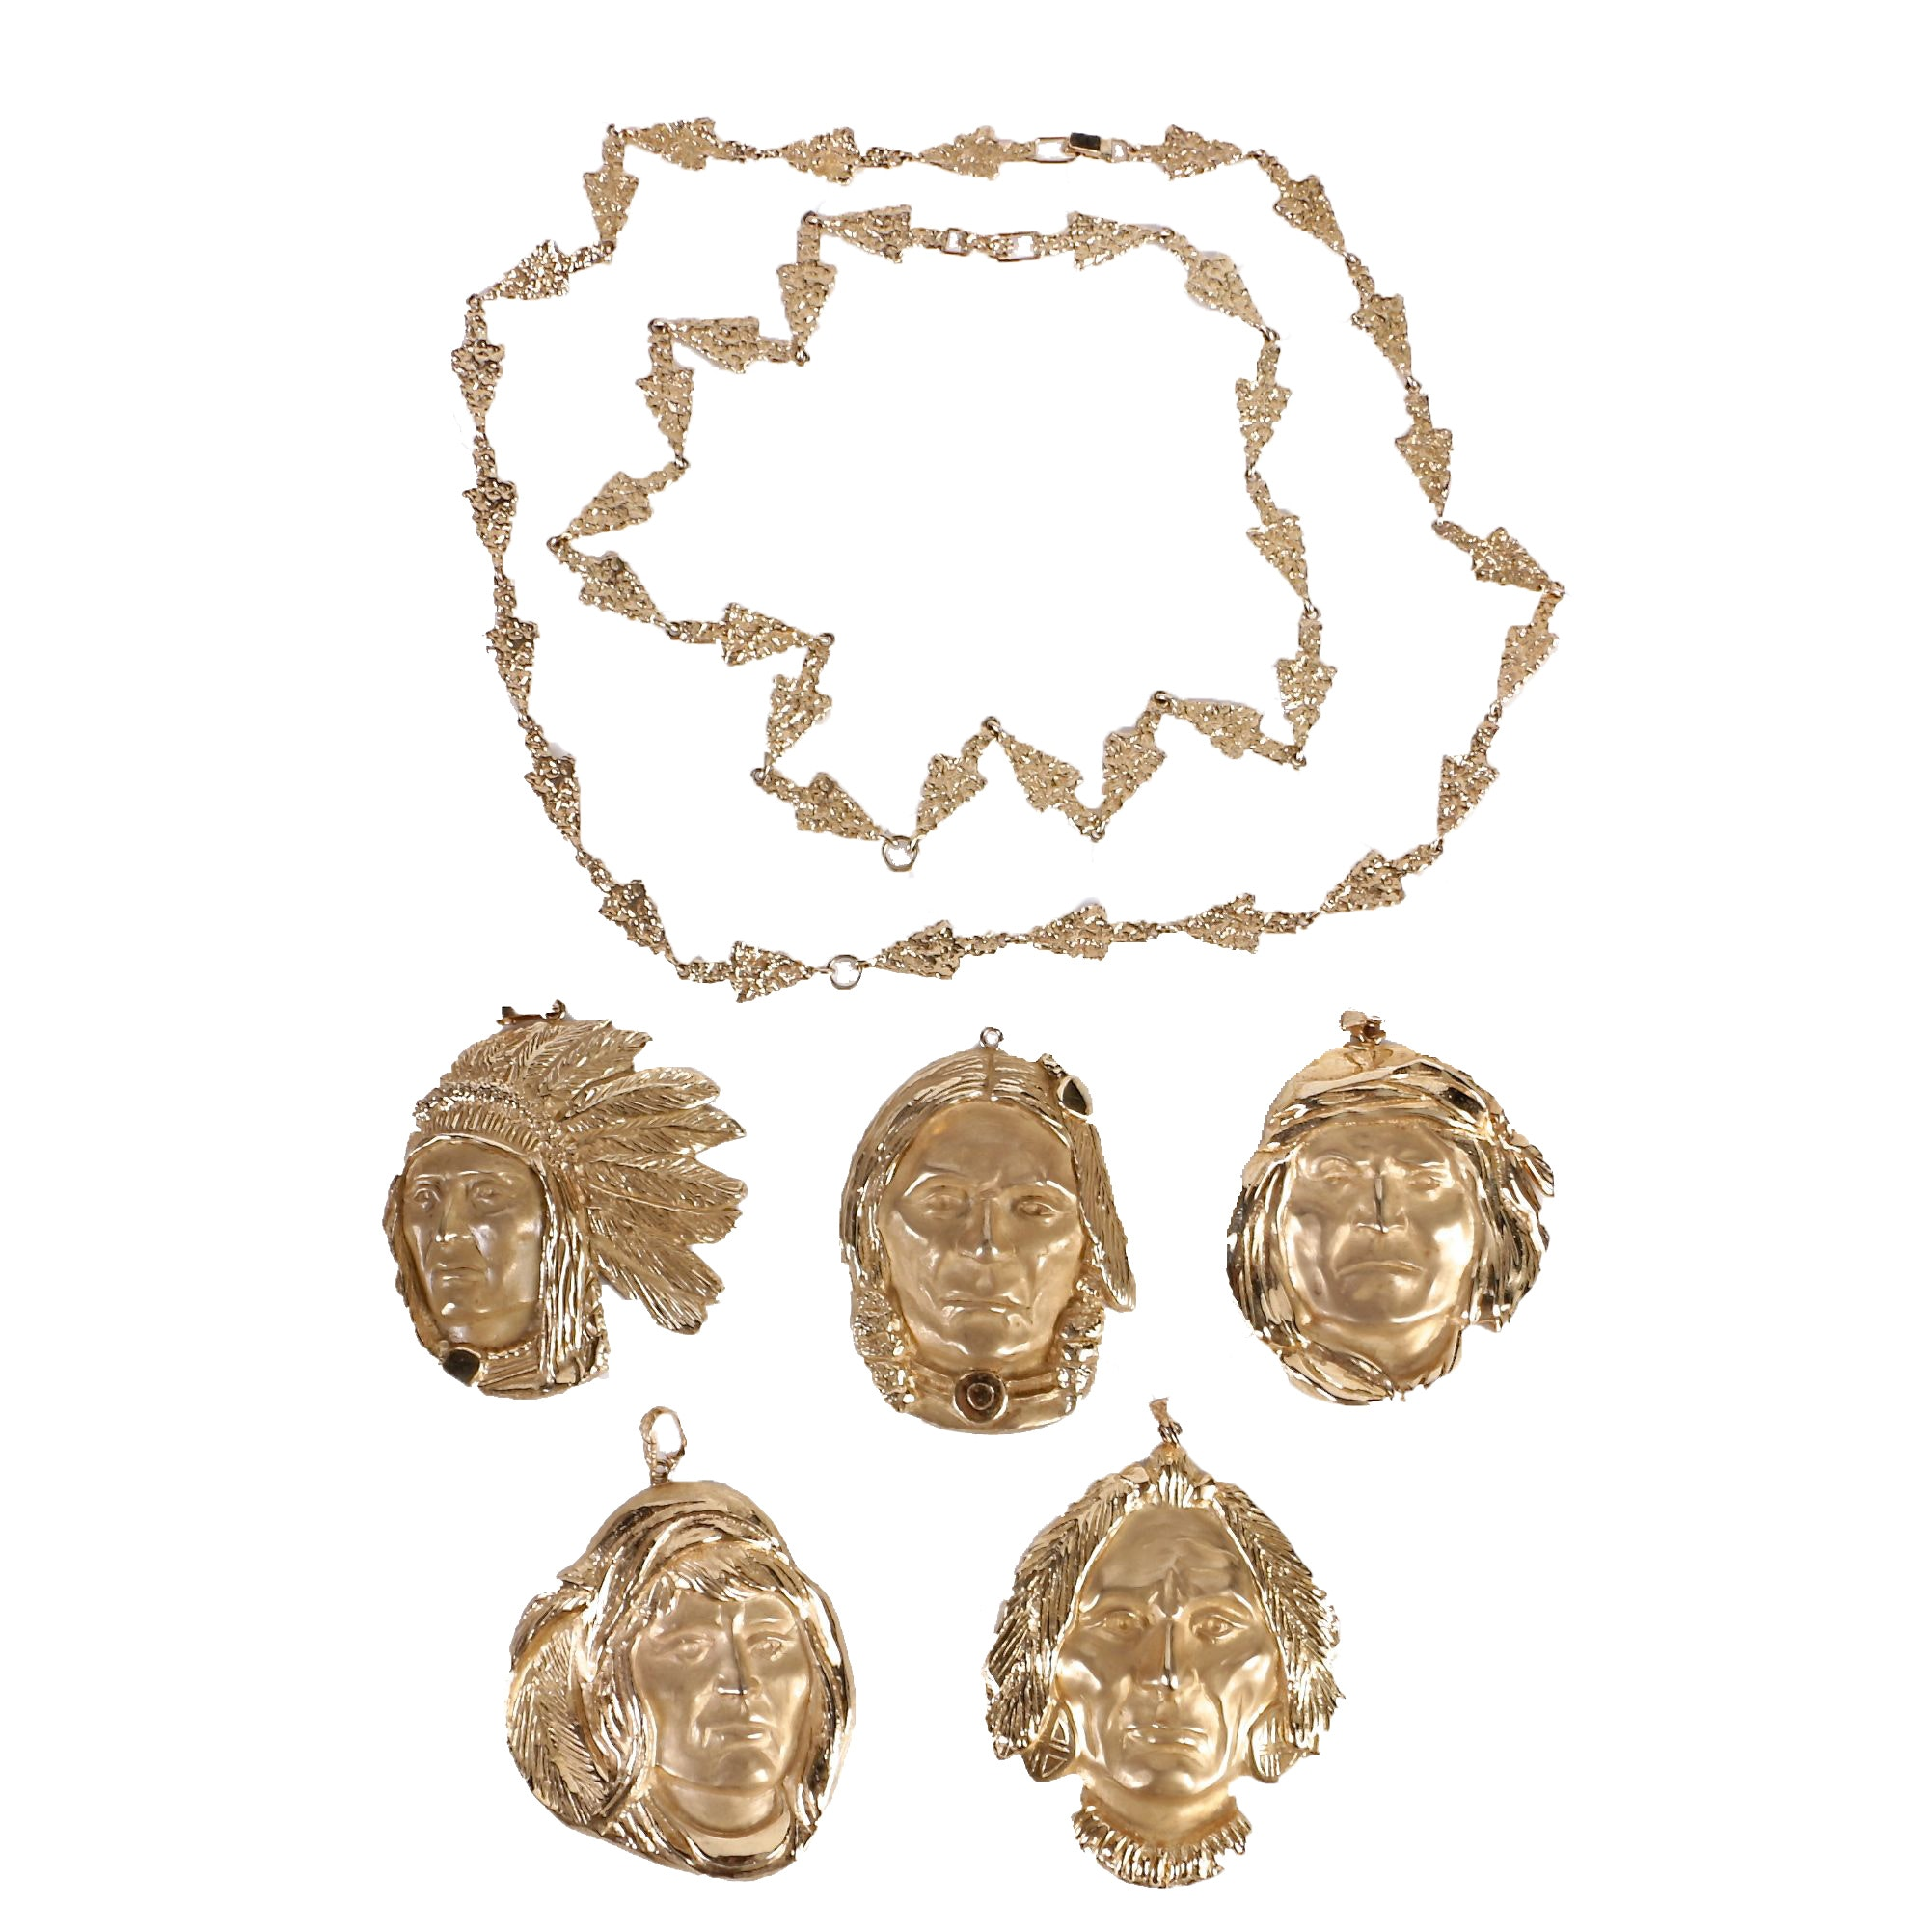 335.00 DWT 14K Yellow Gold Limited Edition Native American Figure Jewelry Set by James Hutchinson for Jewelmasters, Inc.